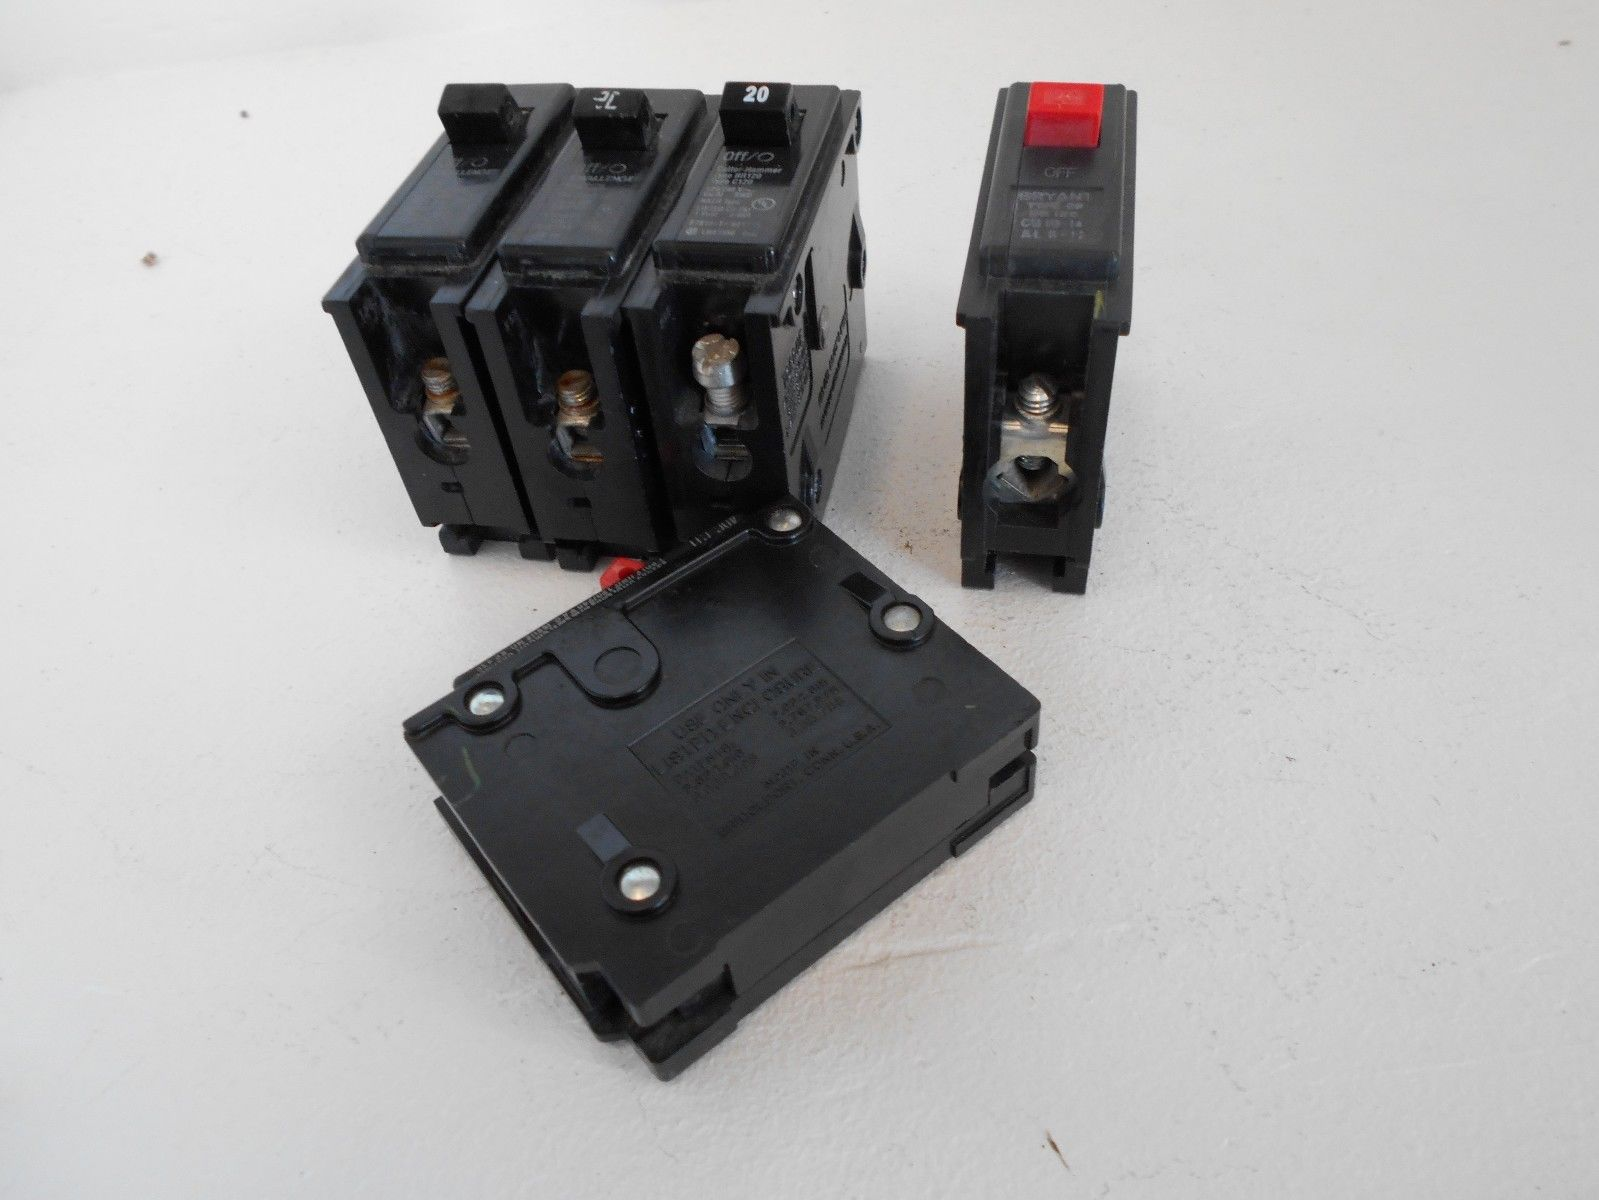 LOT OF 5 CUTLER HAMMER WESTINGHOUSE BR120 STYLE SINGLE POLE 20 AMP ...